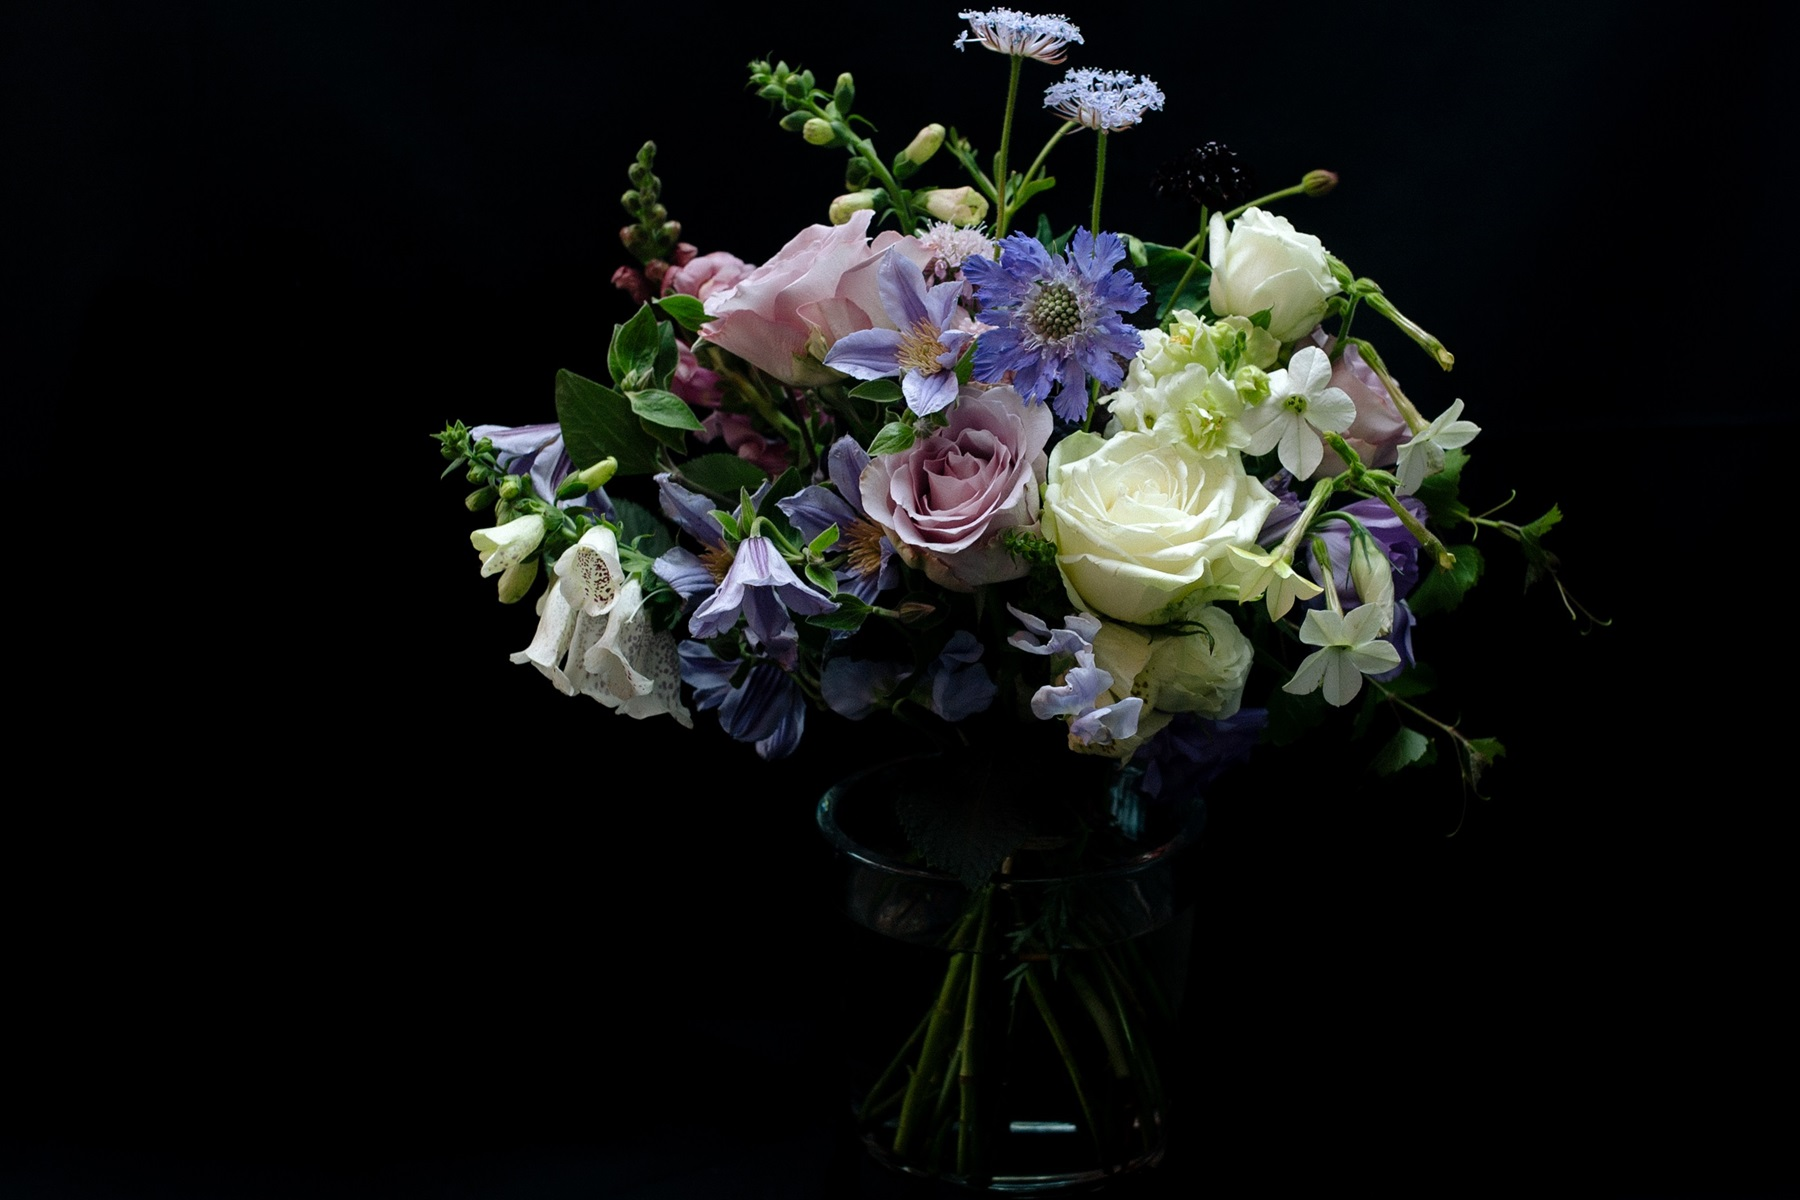 Bouquet flower arrangement of roses and clematis powdery color